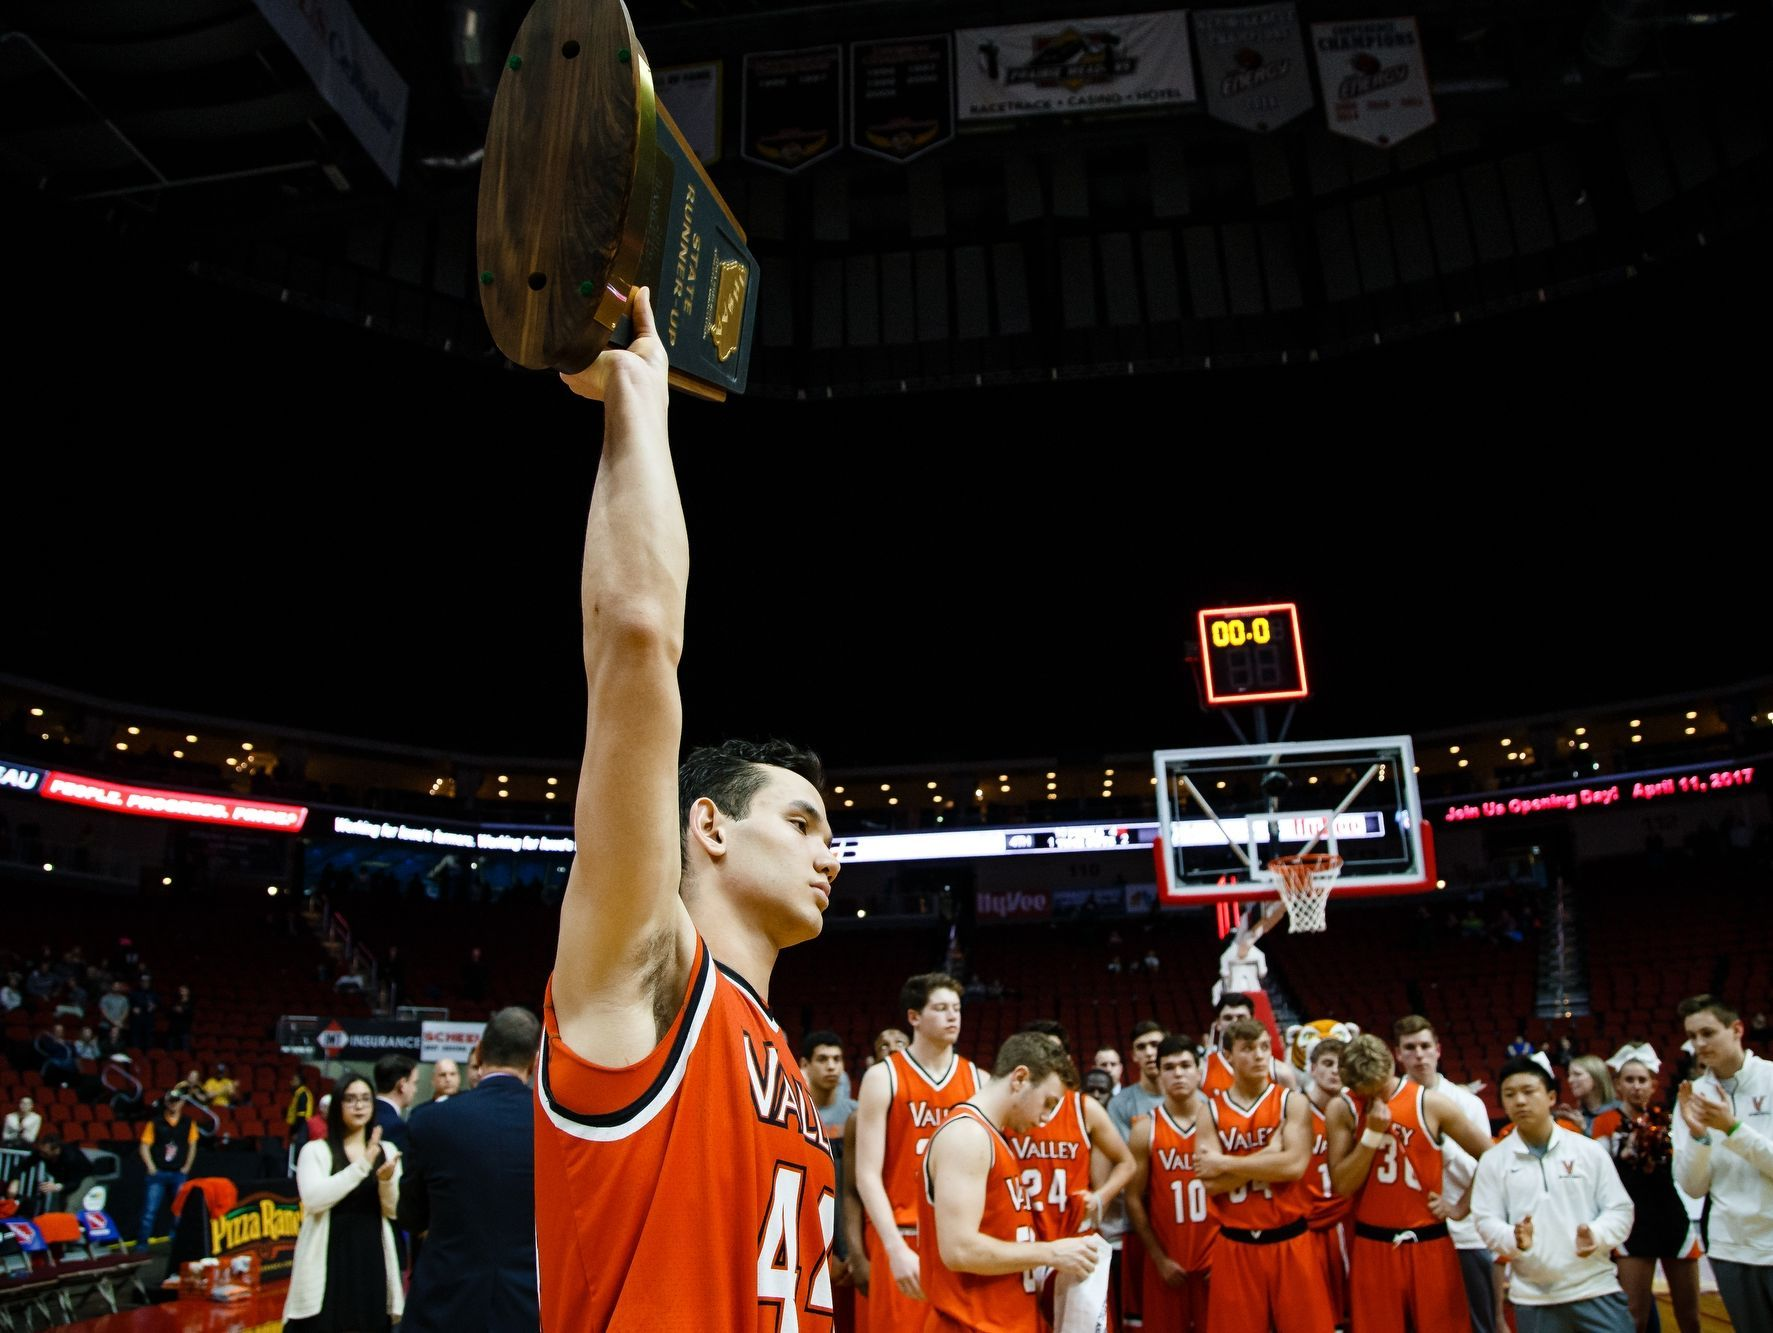 Valley's Quinton Curry (44) raises the runner up trophy after Valley lost, 50-64 to Iowa City West during their 4A state basketball championship game on Saturday, March 11, 2017, in Des Moines.